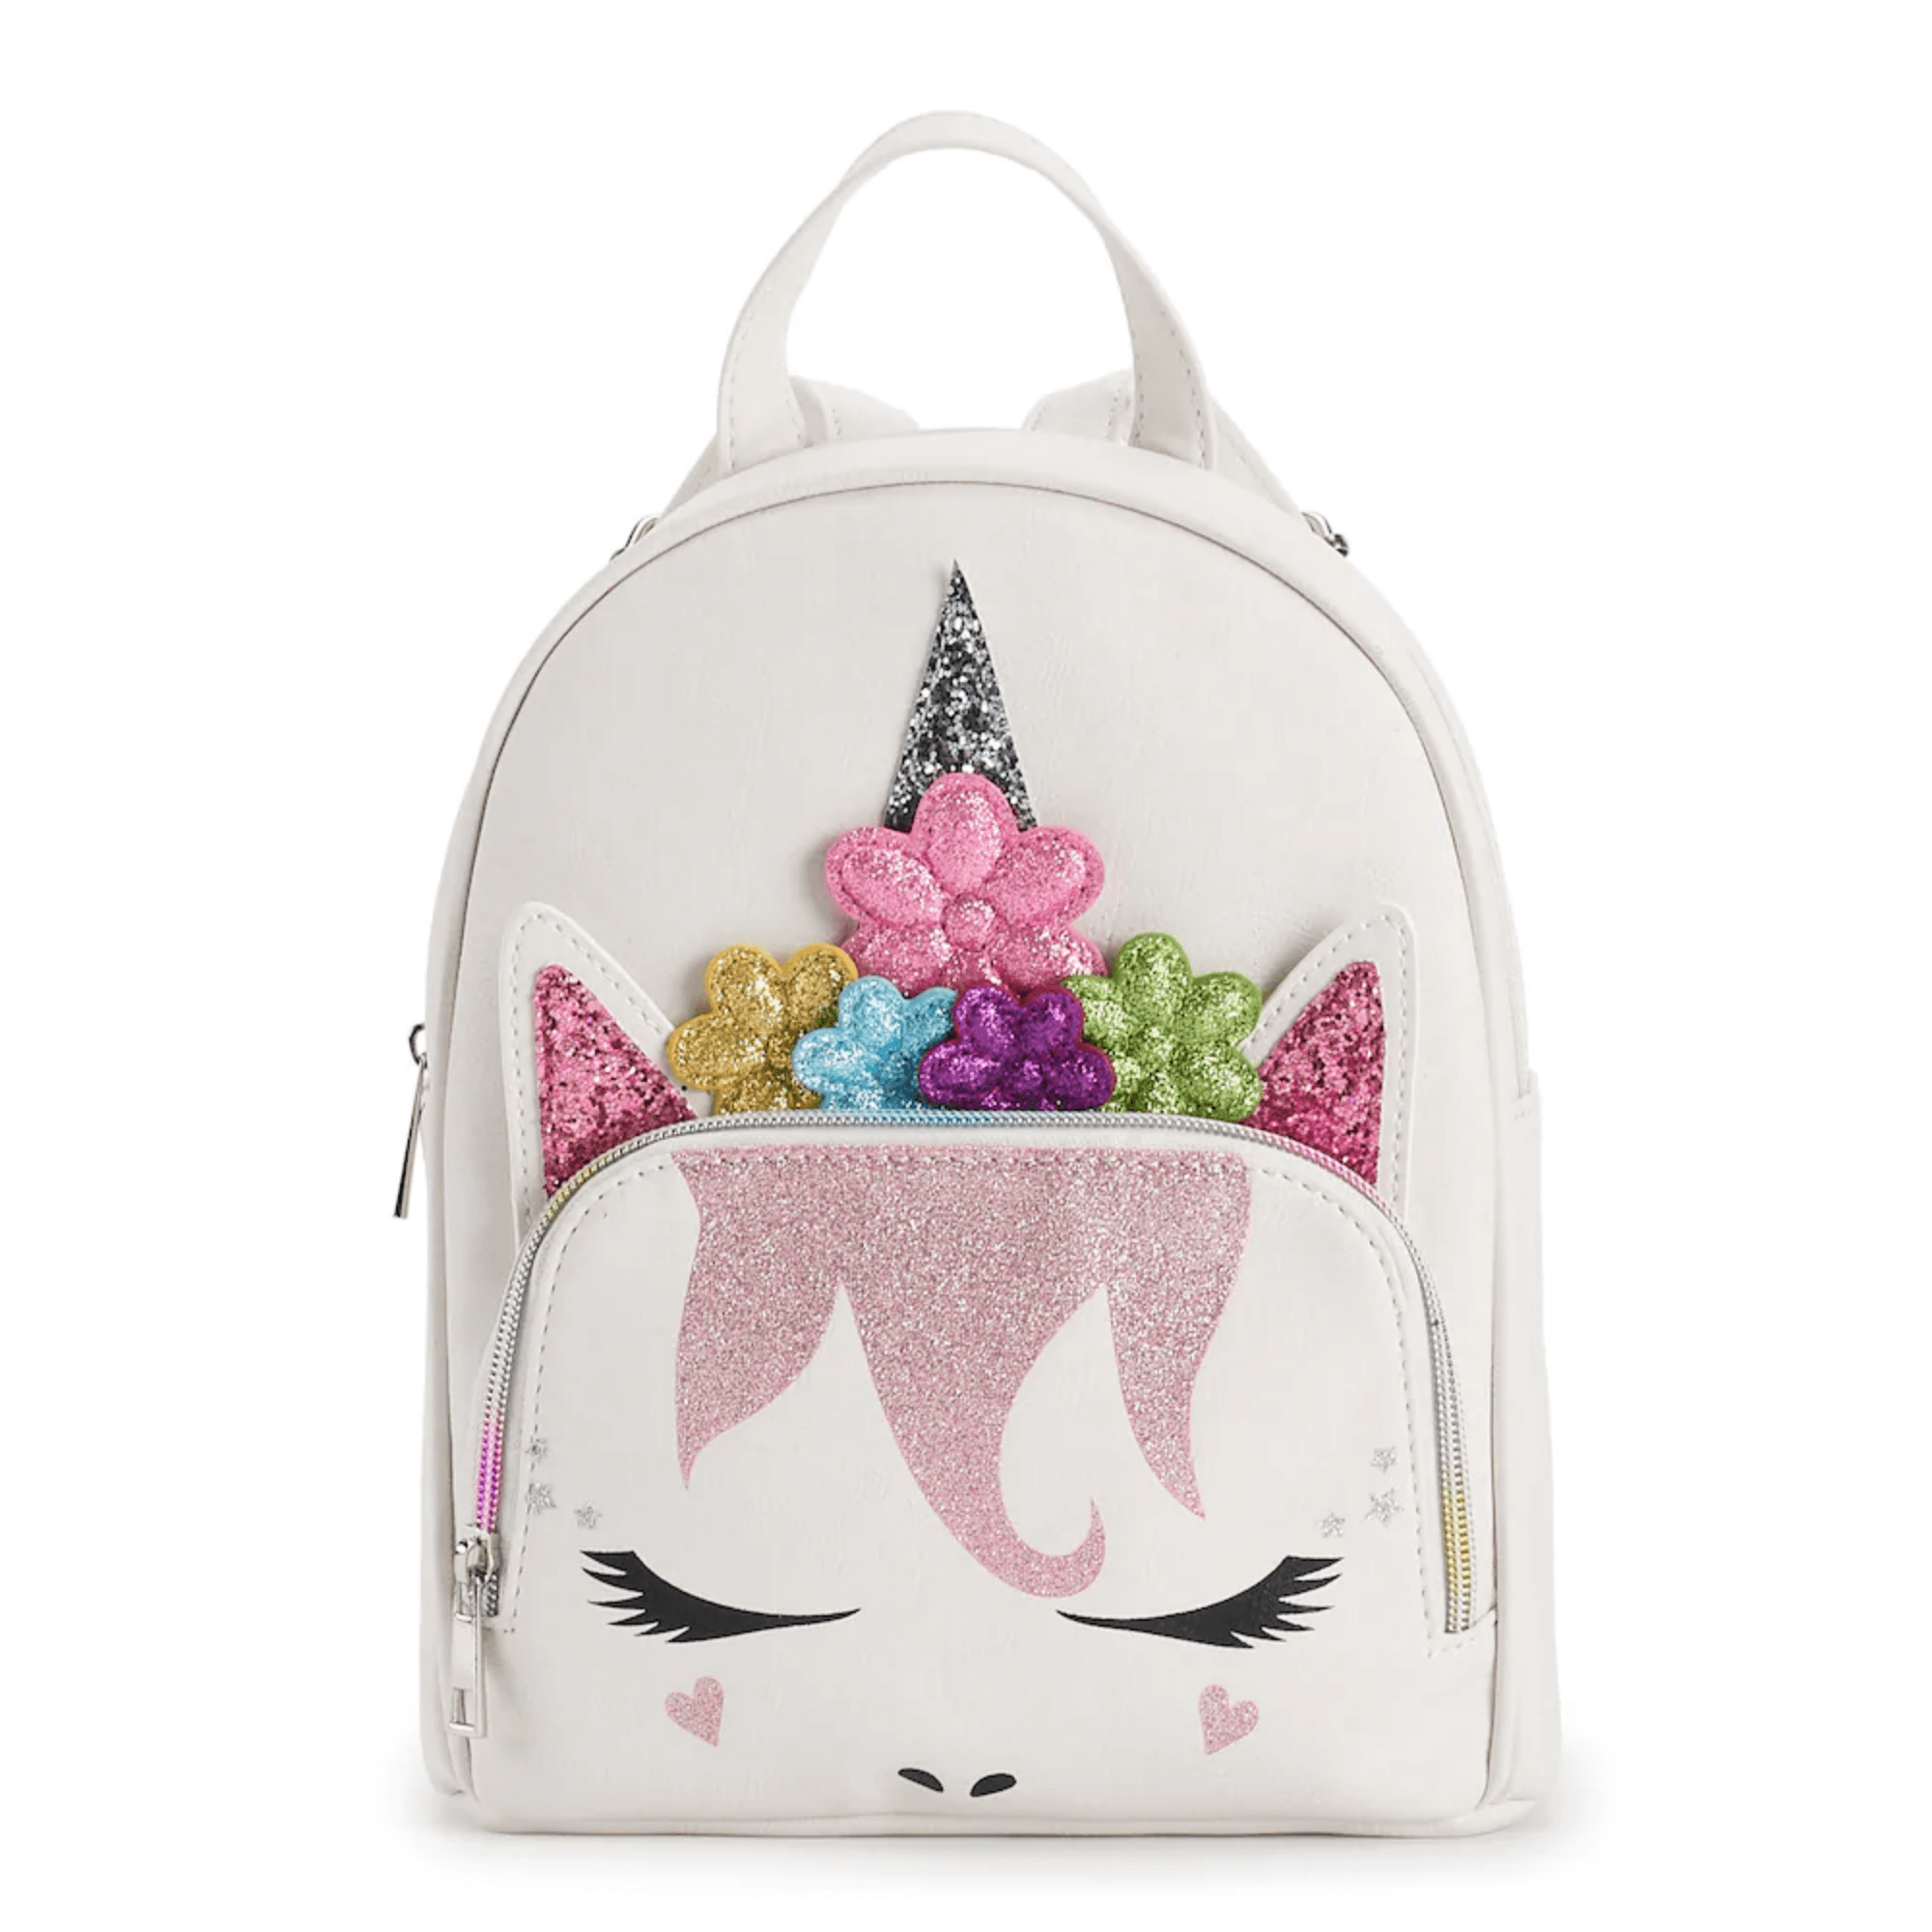 Unicorn with Flower Crown Mini Backpack